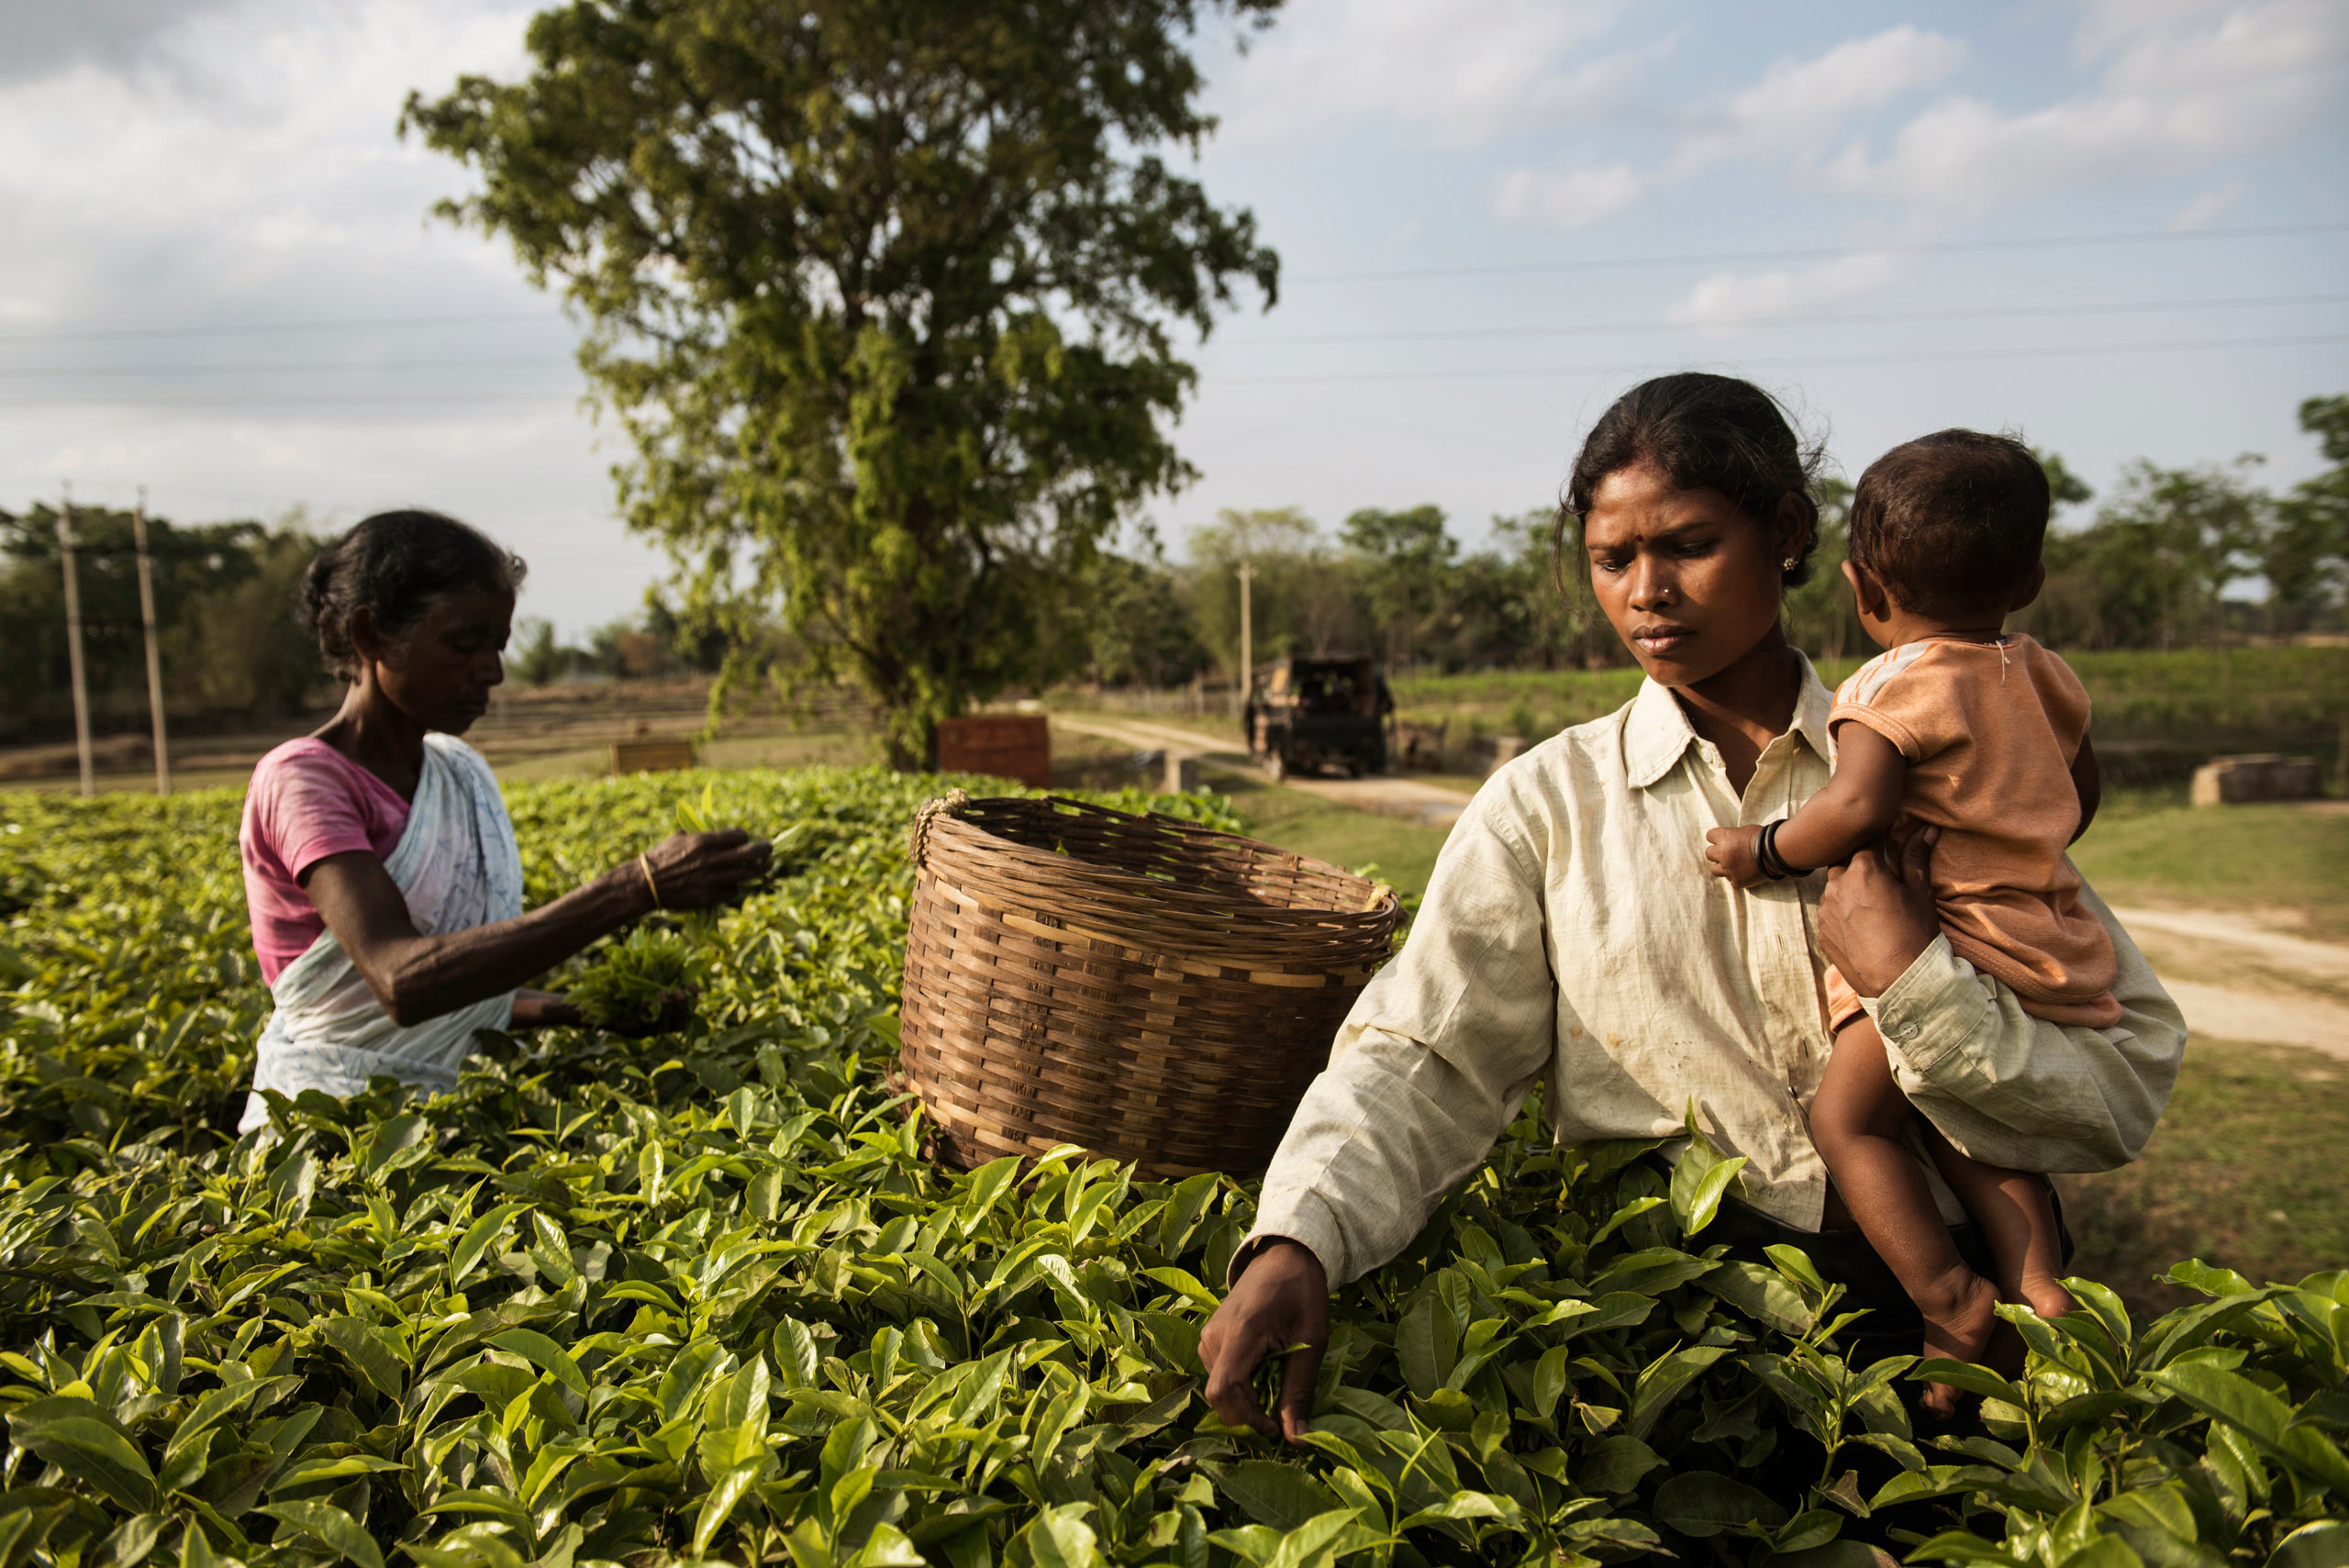 Babita Hemrom picks tealeaves while holding her child alongside other Indian women on a tea plantation, in the Tinkharia garden in Assam, India. April 8, 2015. Over years, women working on the plantations have been subjected to long hours with little accommodation of their basic needs for food, hygiene, latrines, and lesser workload for pregnant and lactating women.